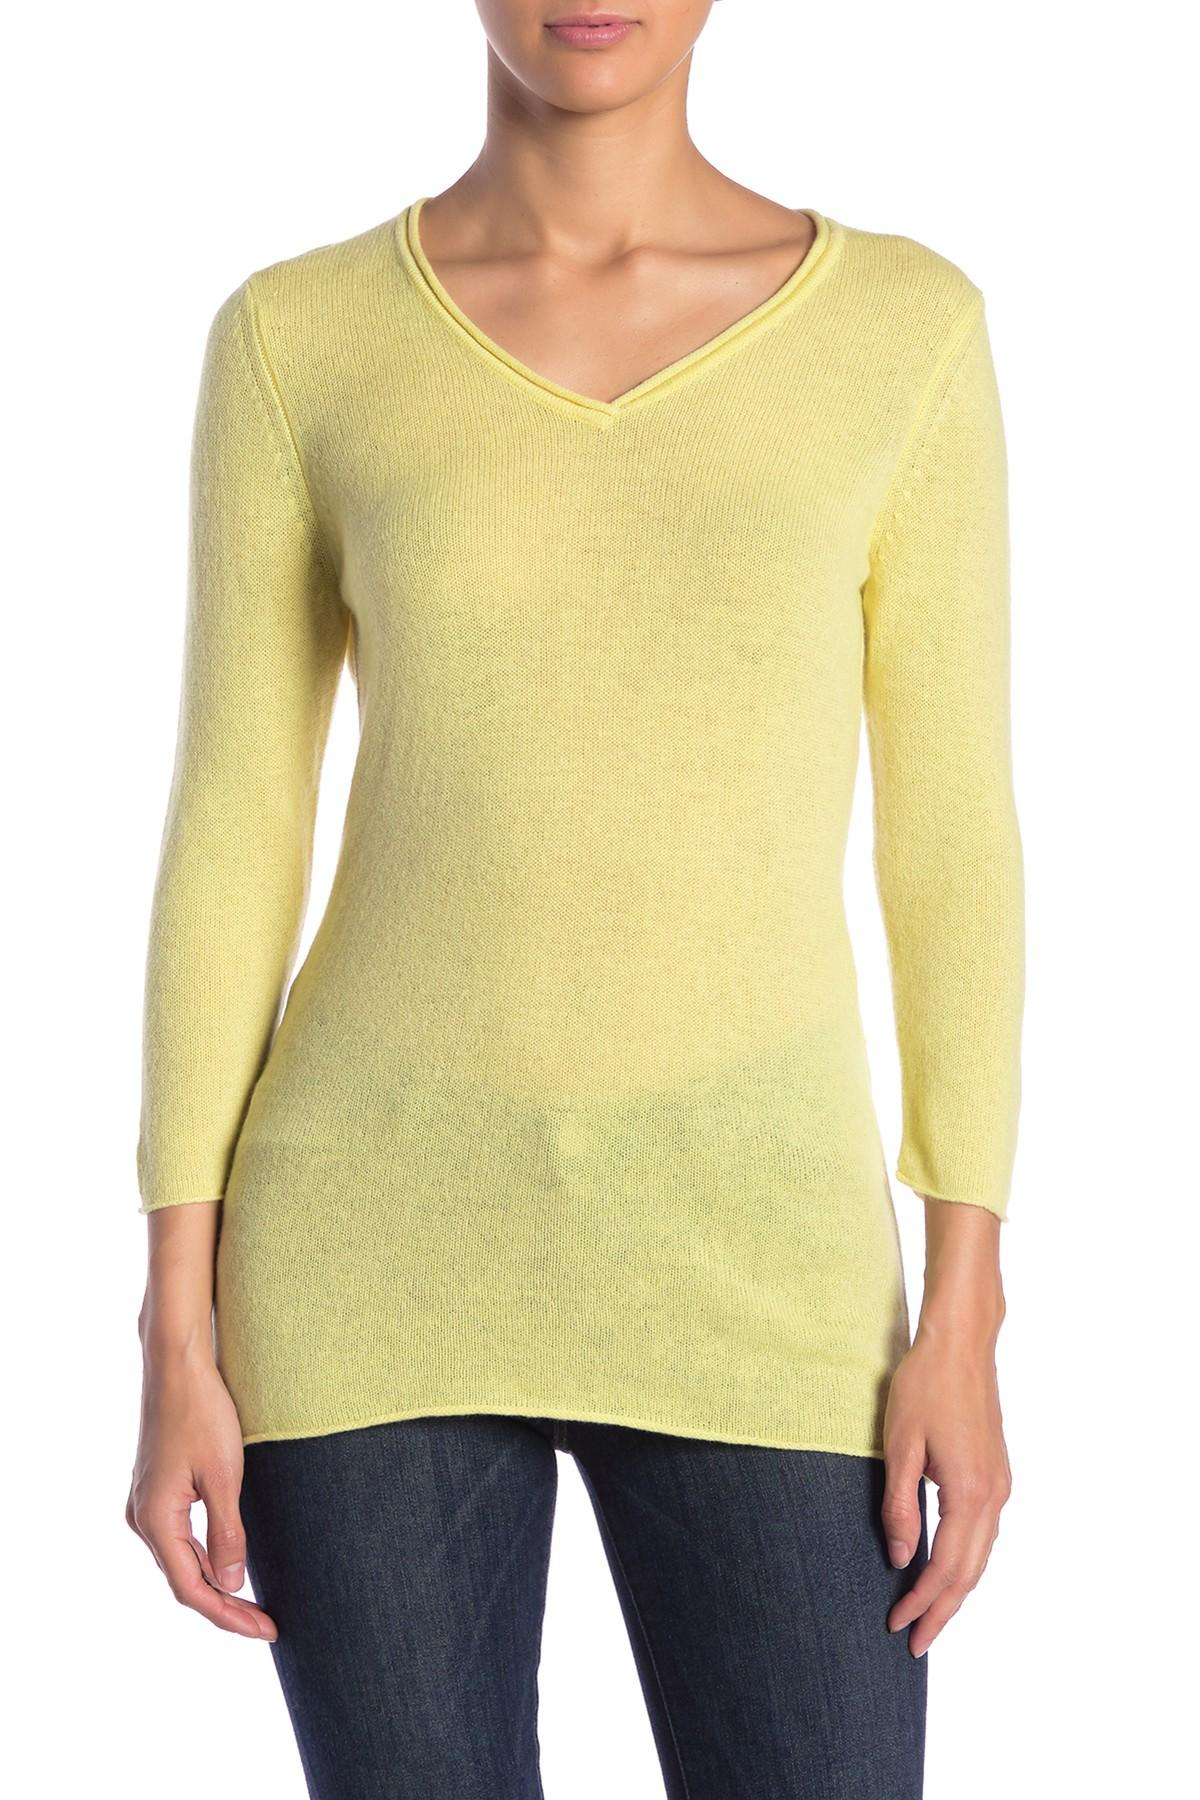 Lyst Kinross Cashmere V Neck Cashmere Sweater In Yellow